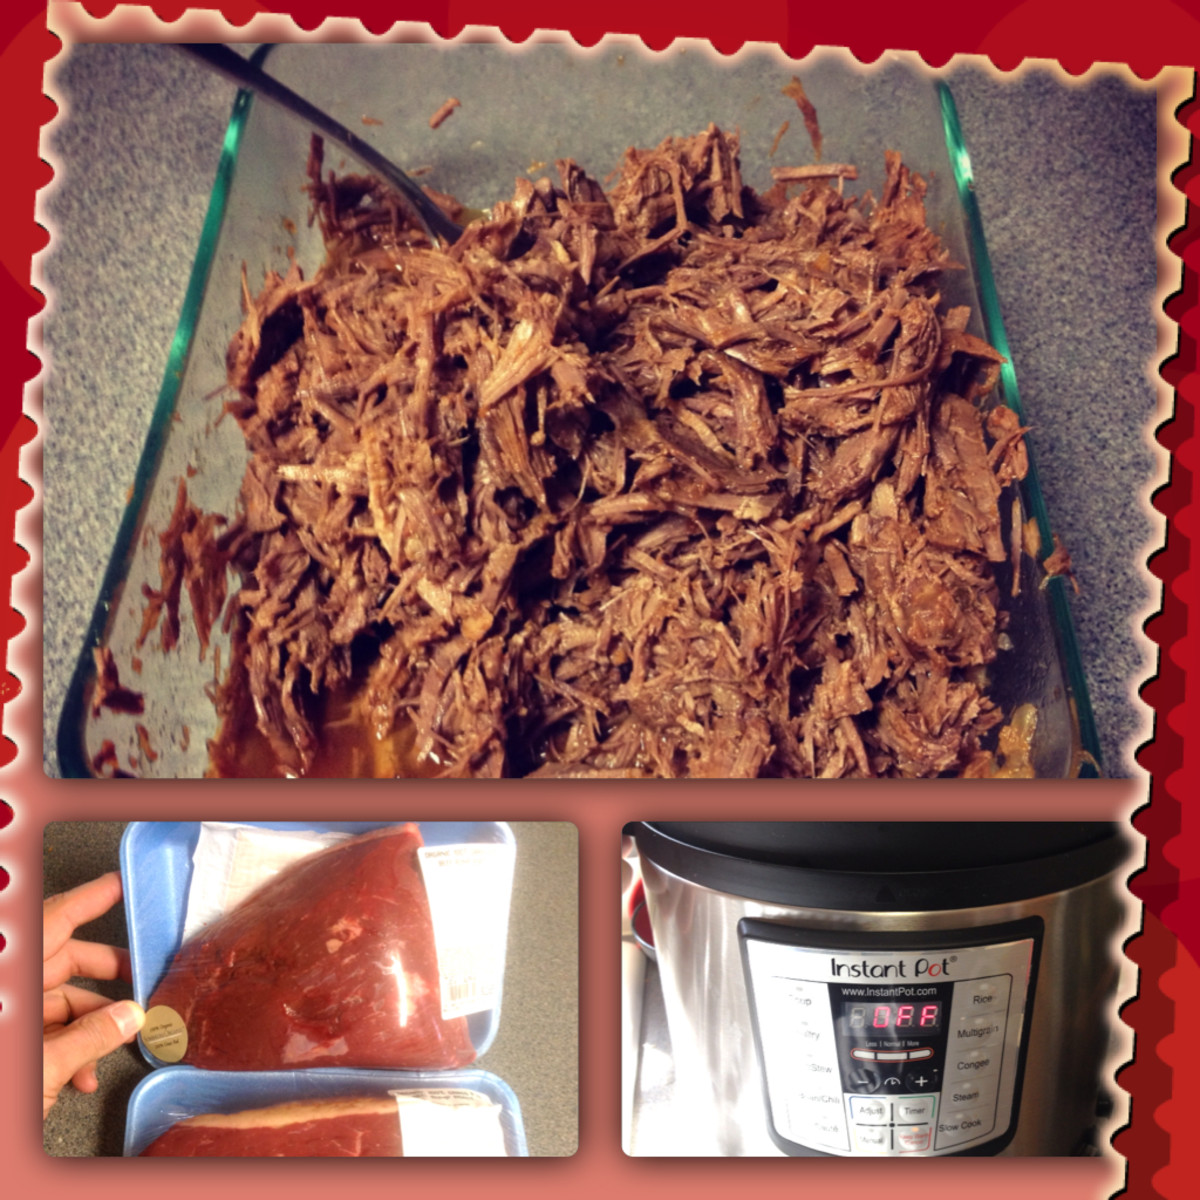 Instant Pot Electric Pressure Cooker Shredded Beef Recipe